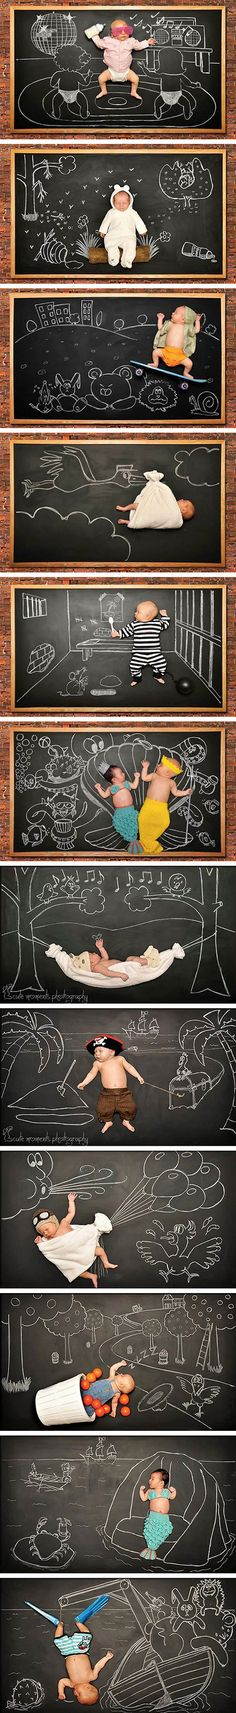 Chalkboard baby photos!